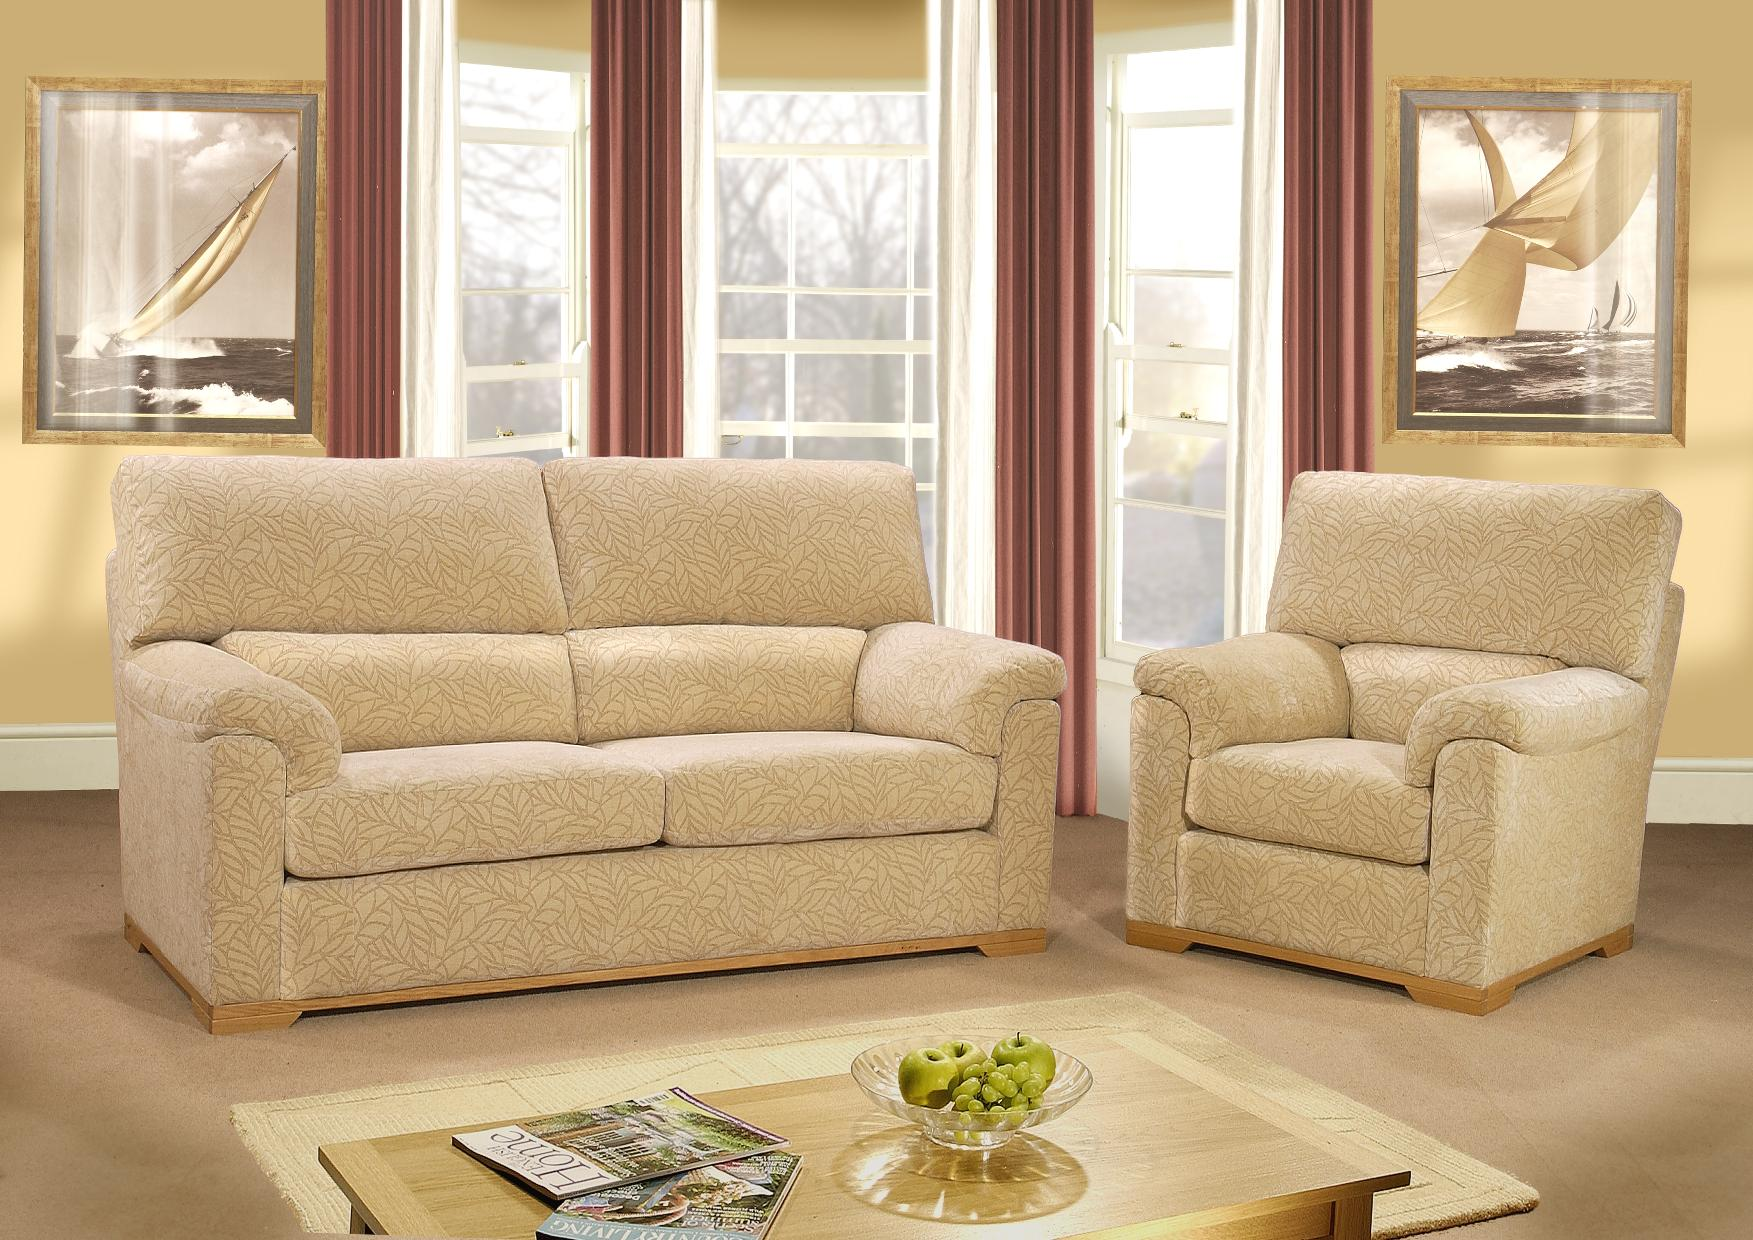 3 Seater (2 Cushion)